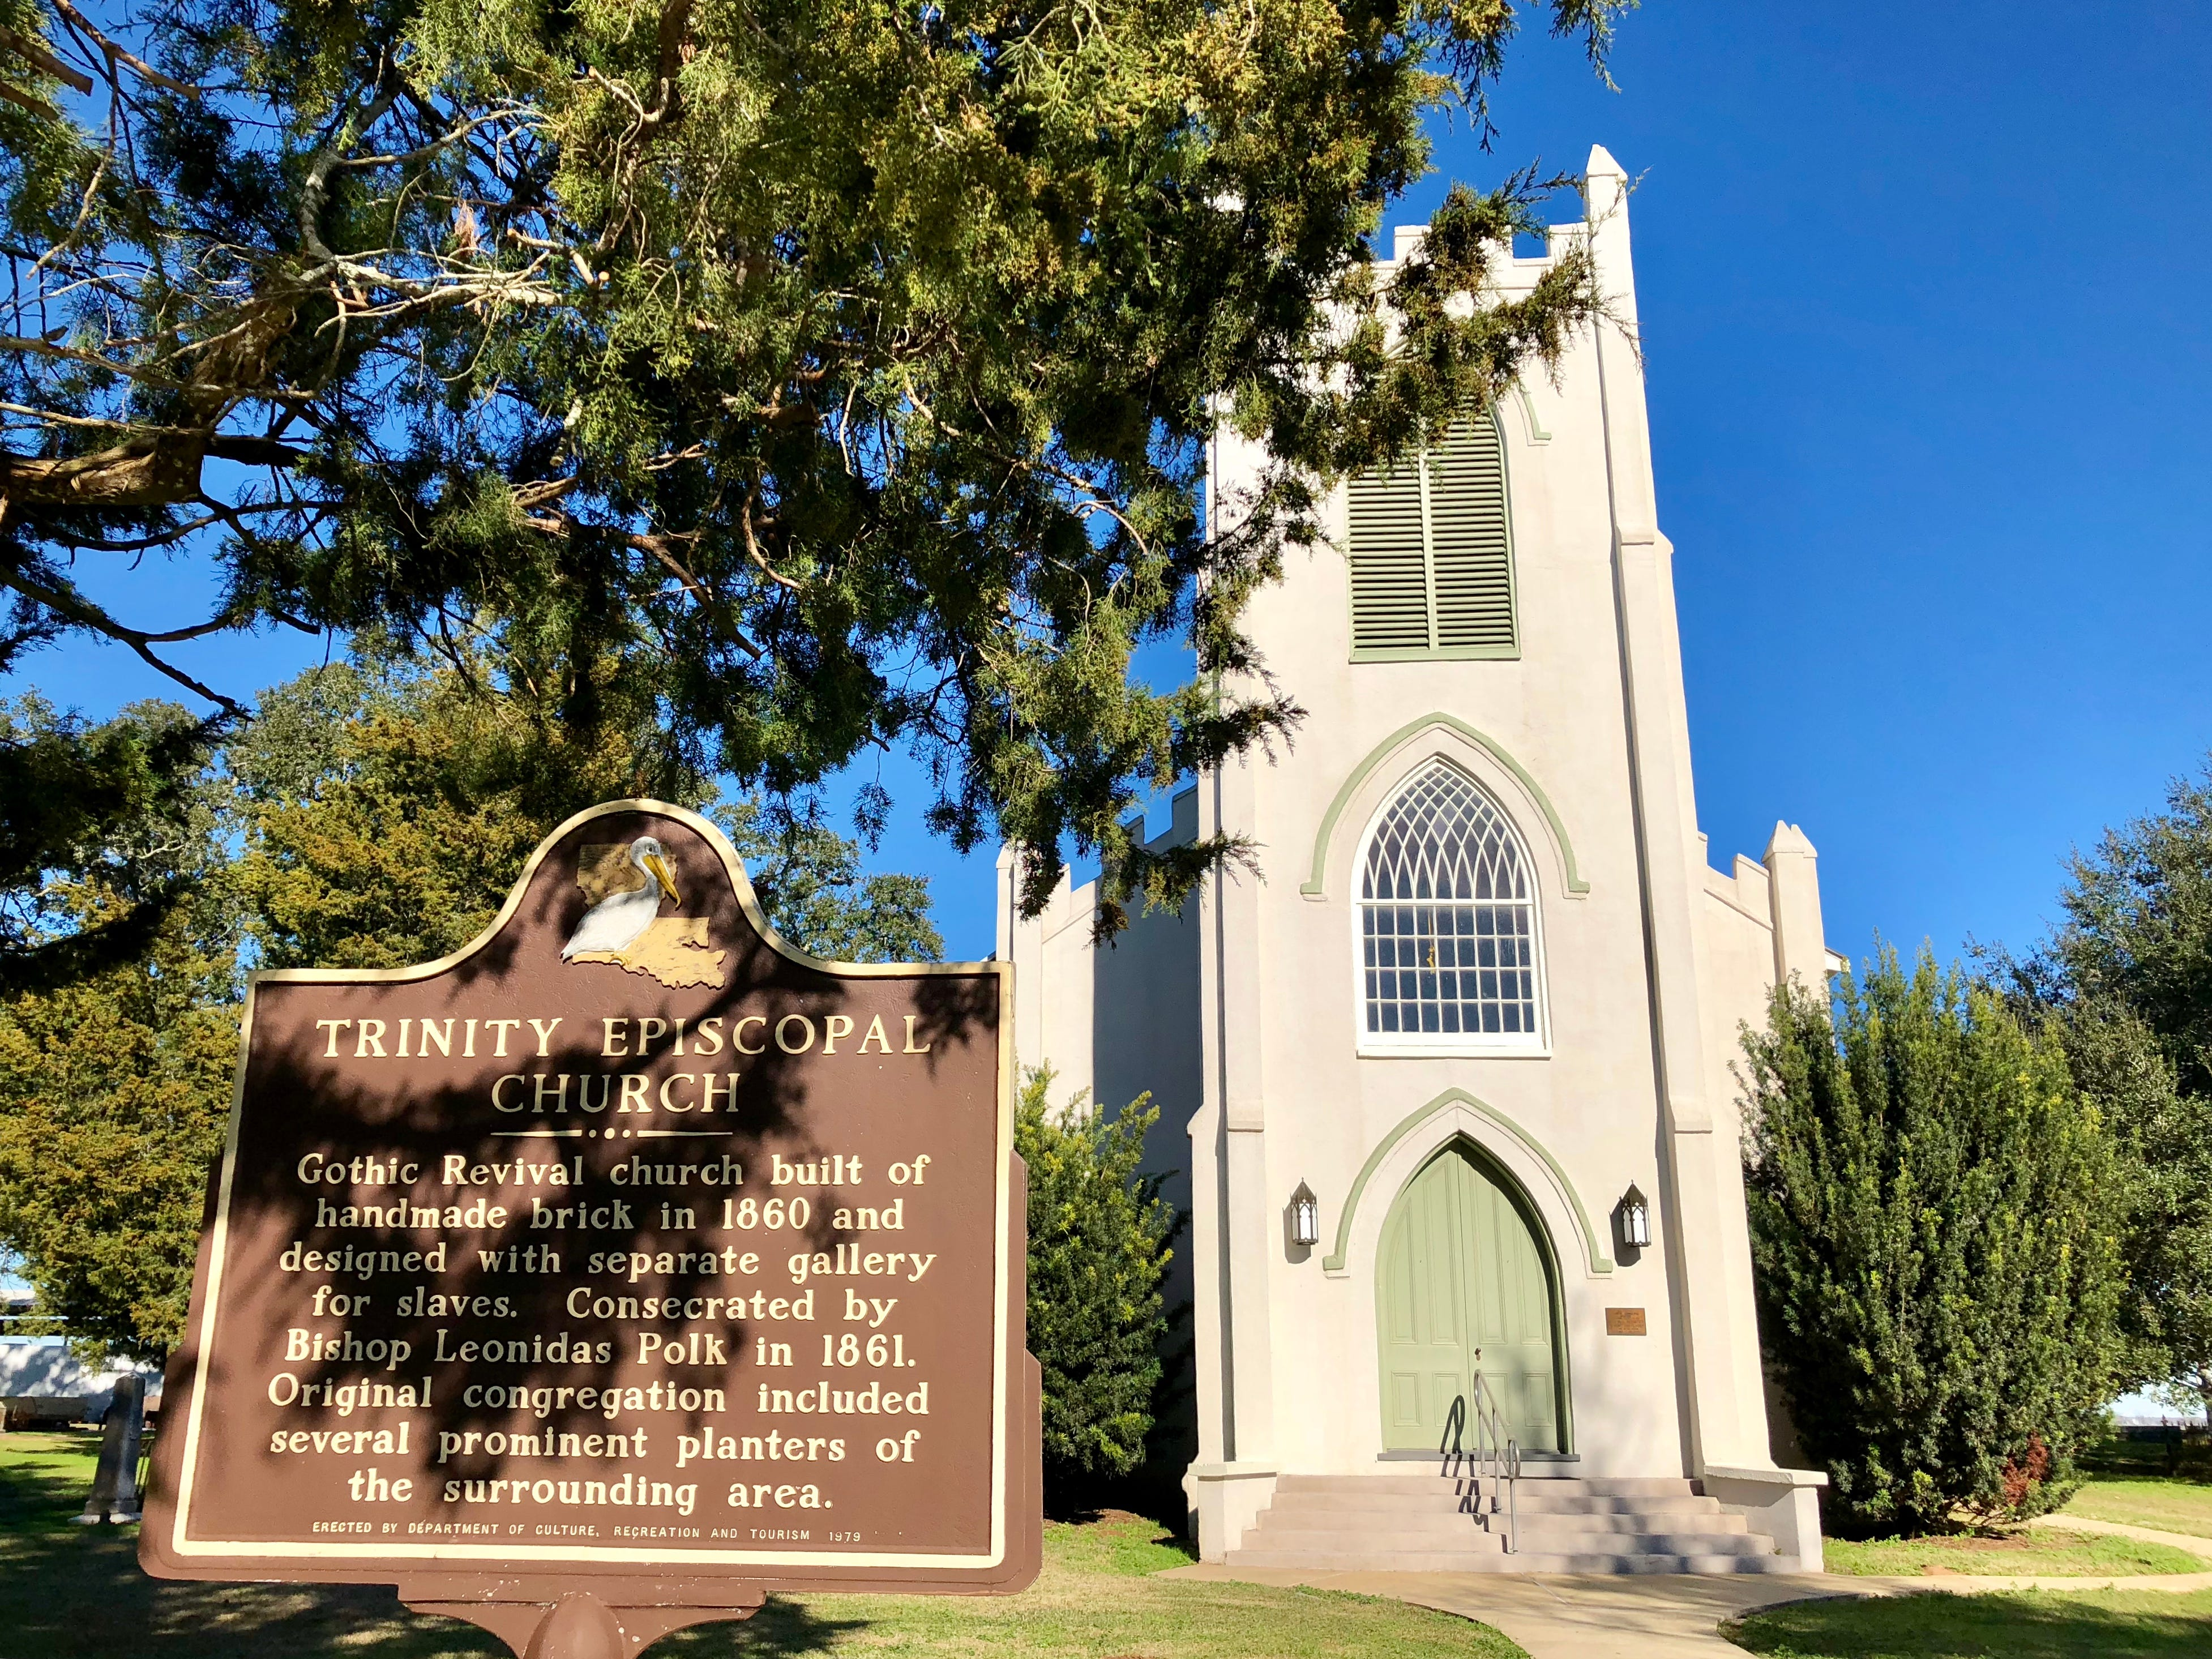 This Gothic Revival church built of handmade bricks in 1860 still stands in Cheneyville surrounded by historic graves. It is part of the Northup Trail, one of 18 Louisiana Byways designated by the state Office of Tourism.